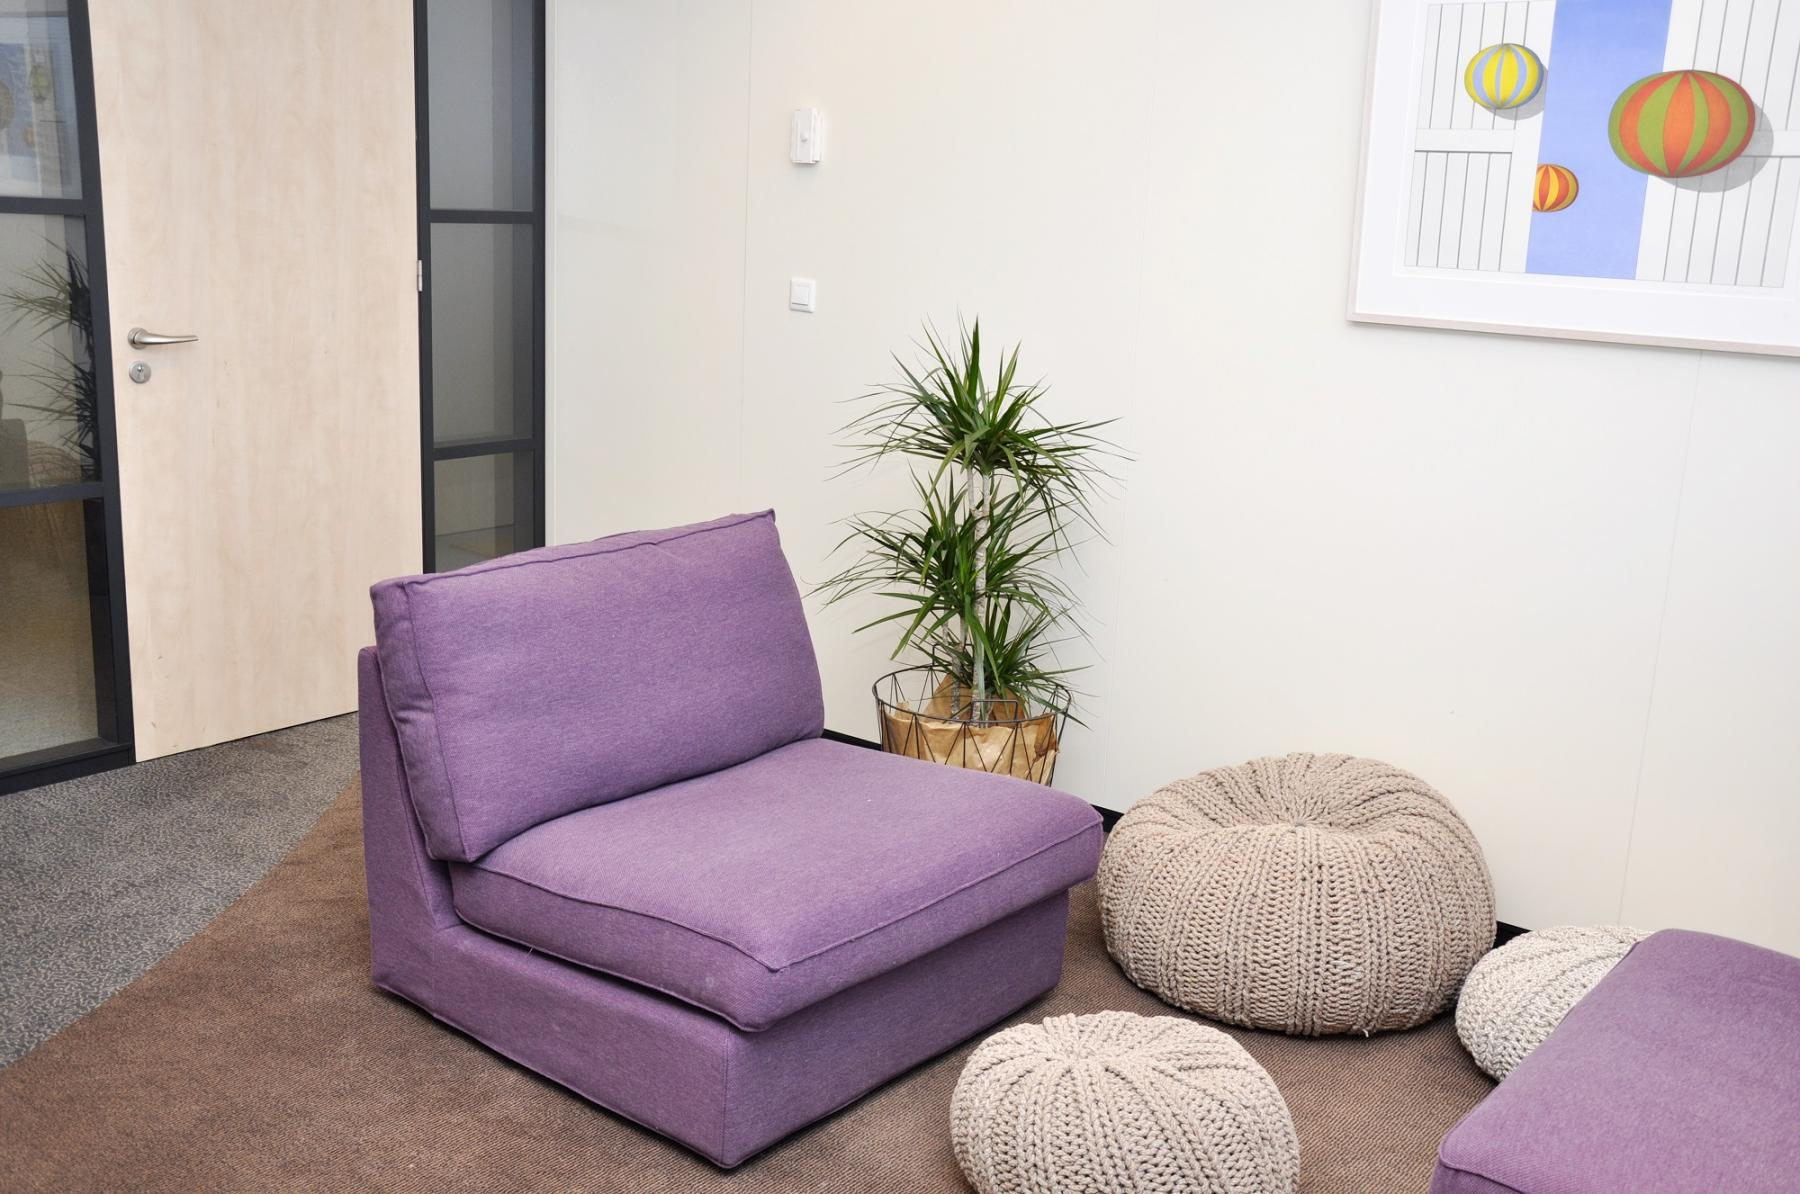 nice place to chill out and relax purple couch